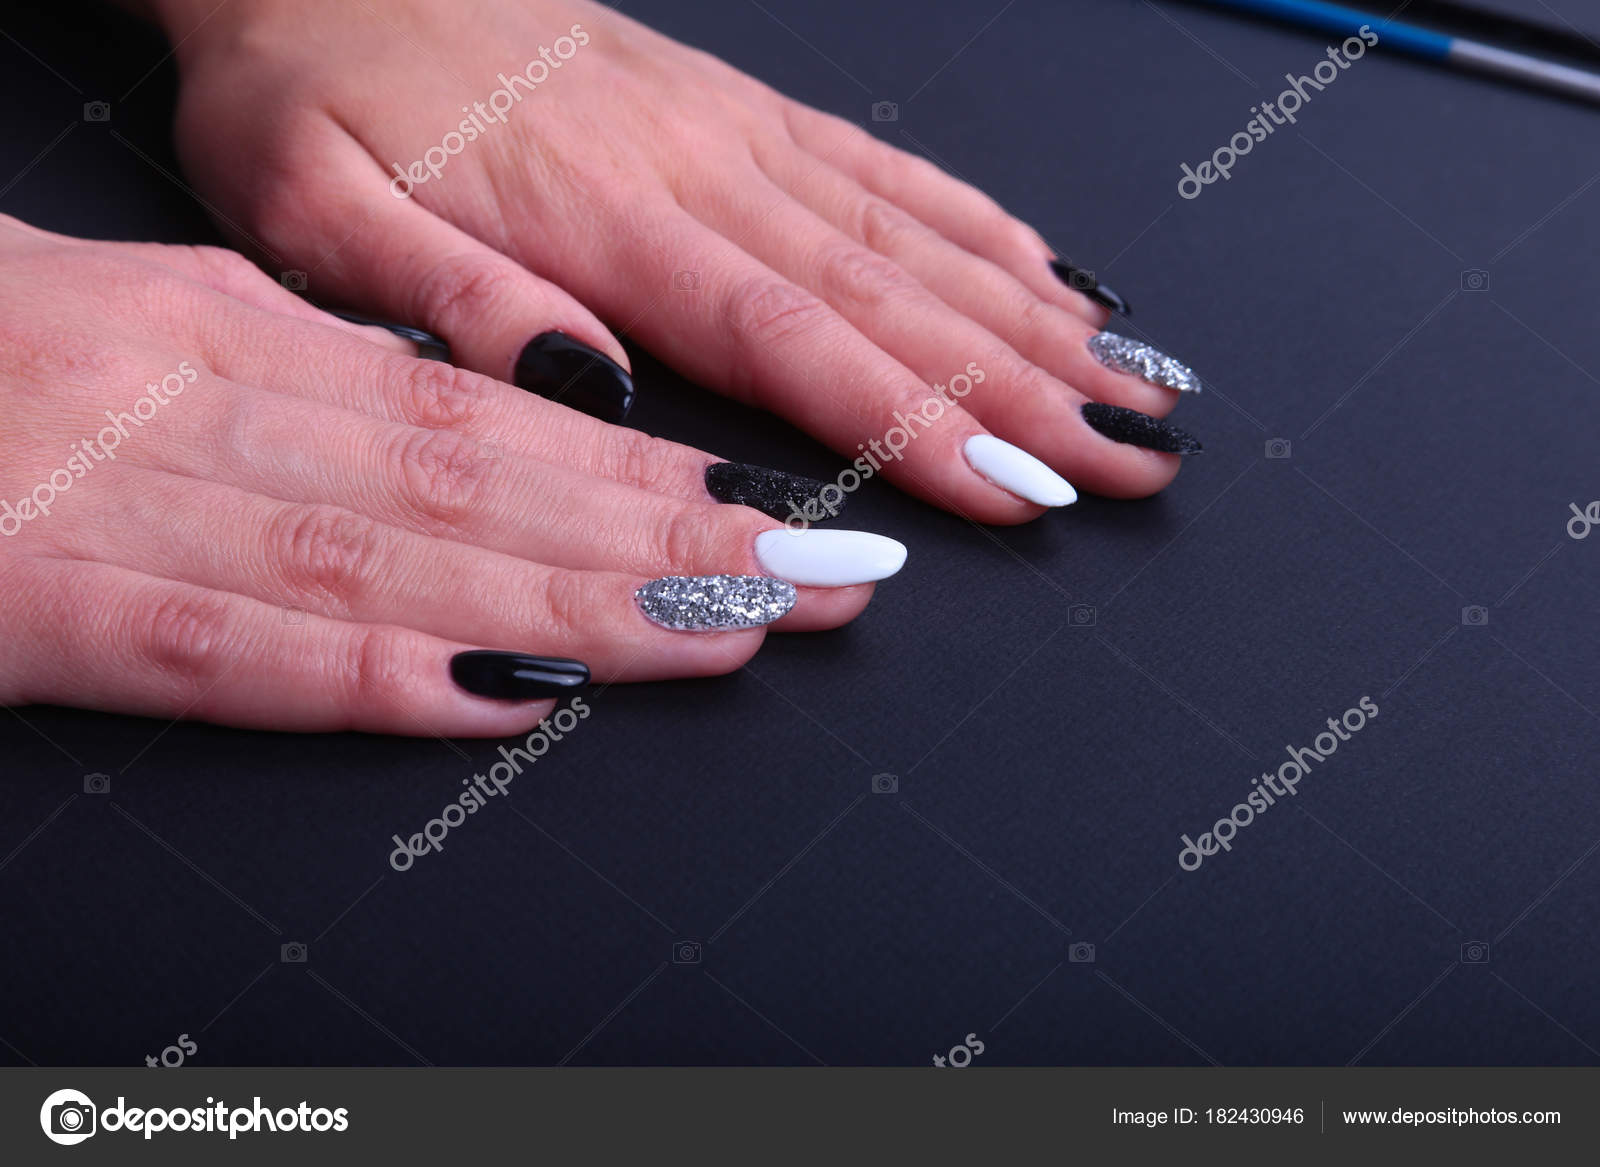 Black And White Marble Nails Black White Nail Art Manicure Holiday Style Bright Manicure With Sparkles Beauty Hands Stylish Nails Nail Polish Stock Photo C Vicby 182430946